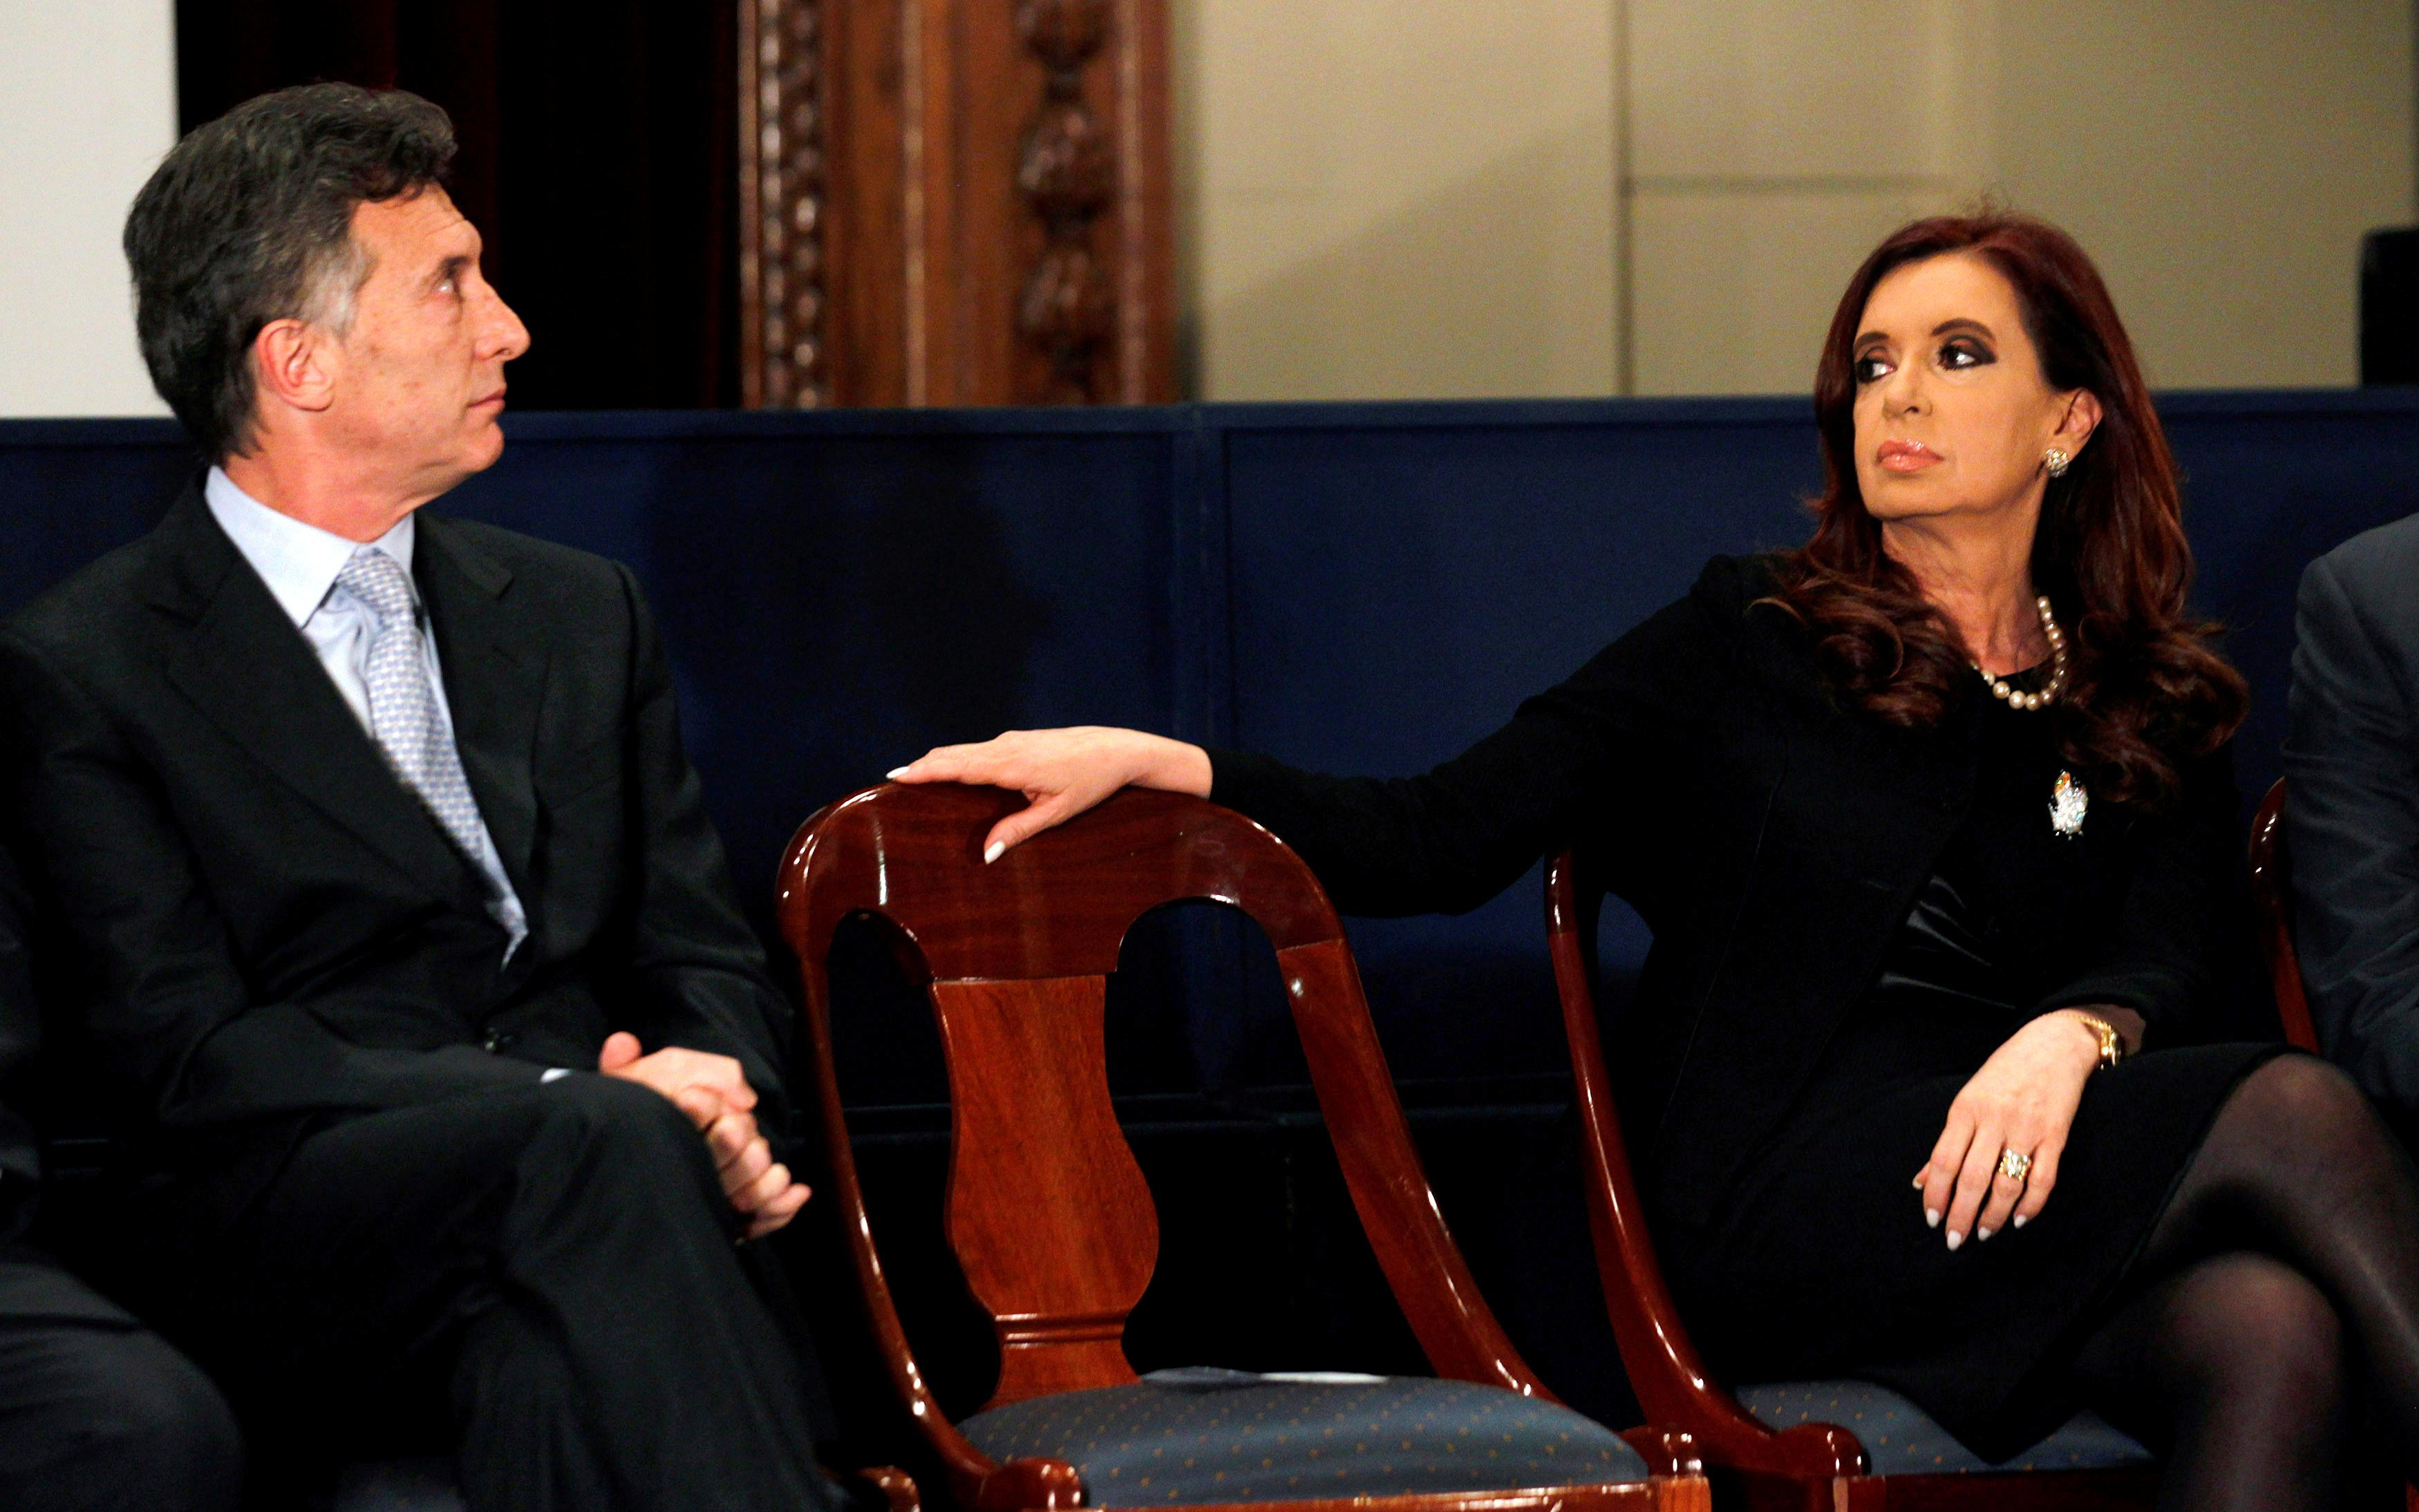 'Up in the air': Polls show Argentine presidential race neck-and-neck